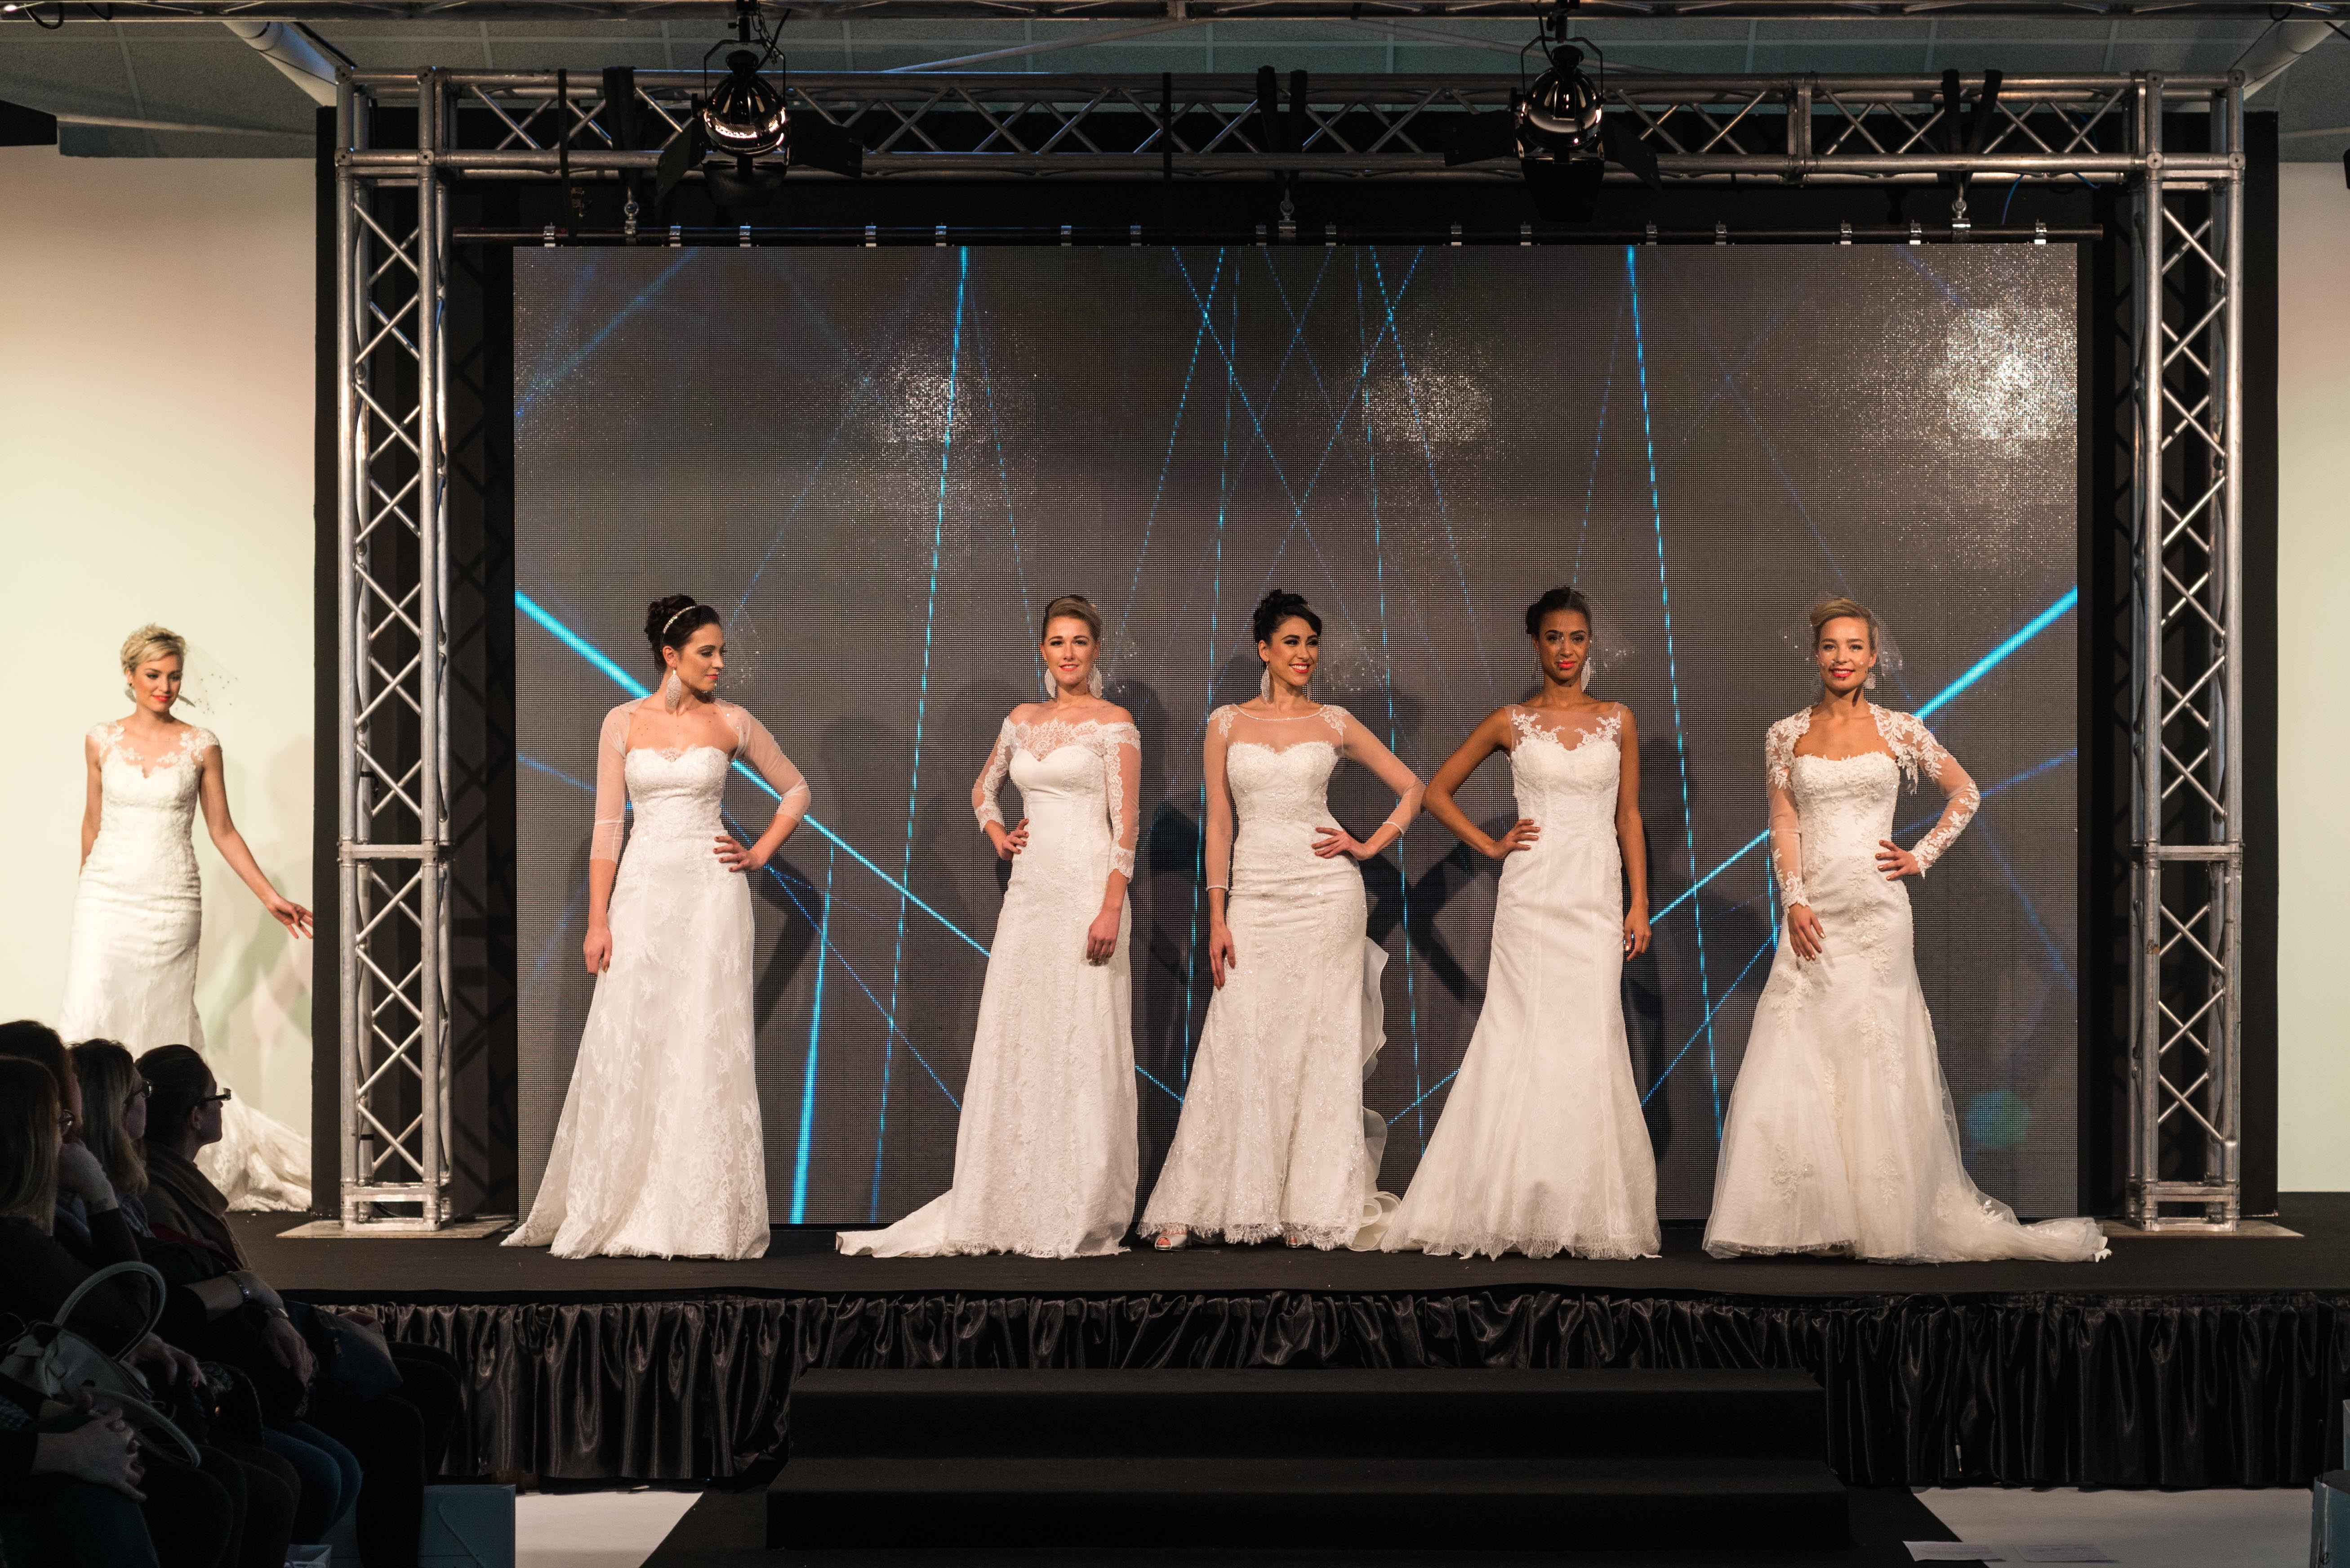 Sposo&Sposa – Wedding and Ceremony in fiera a Udine